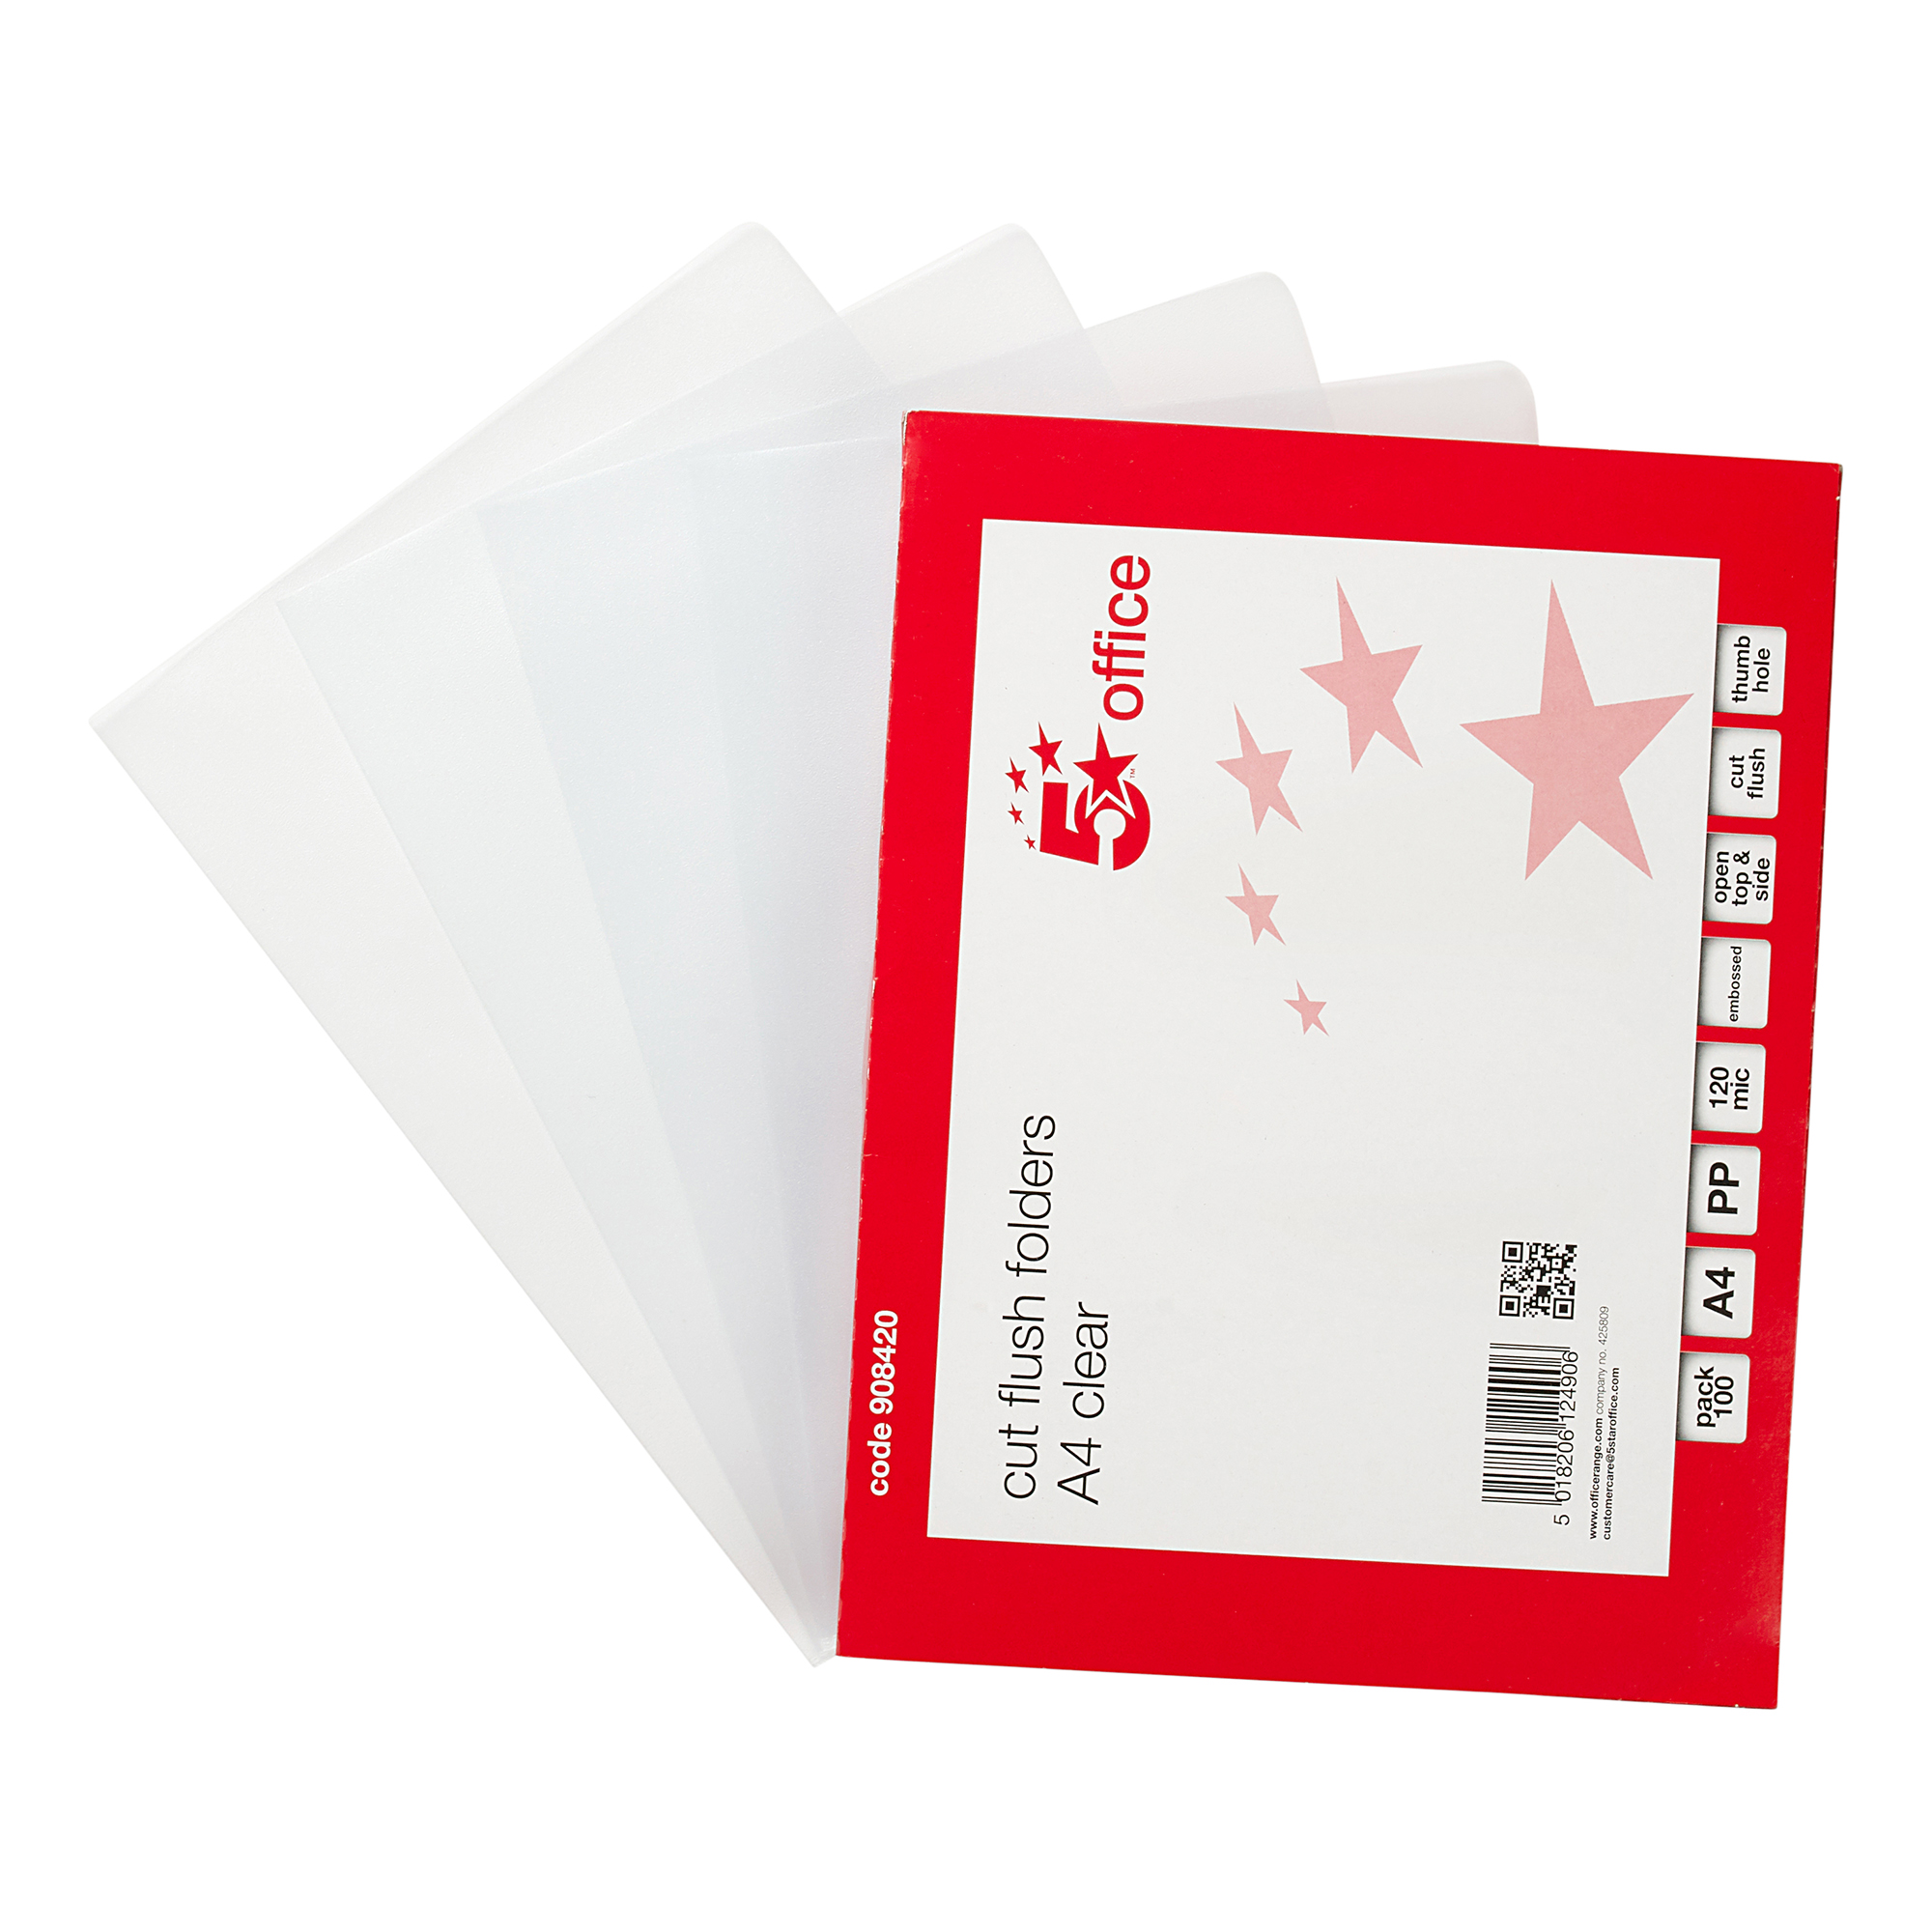 Clip Files 5 Star Office Folder Cut Flush Embossed Polypropylene Copy-safe 120 Micron A4 Clear Pack 100